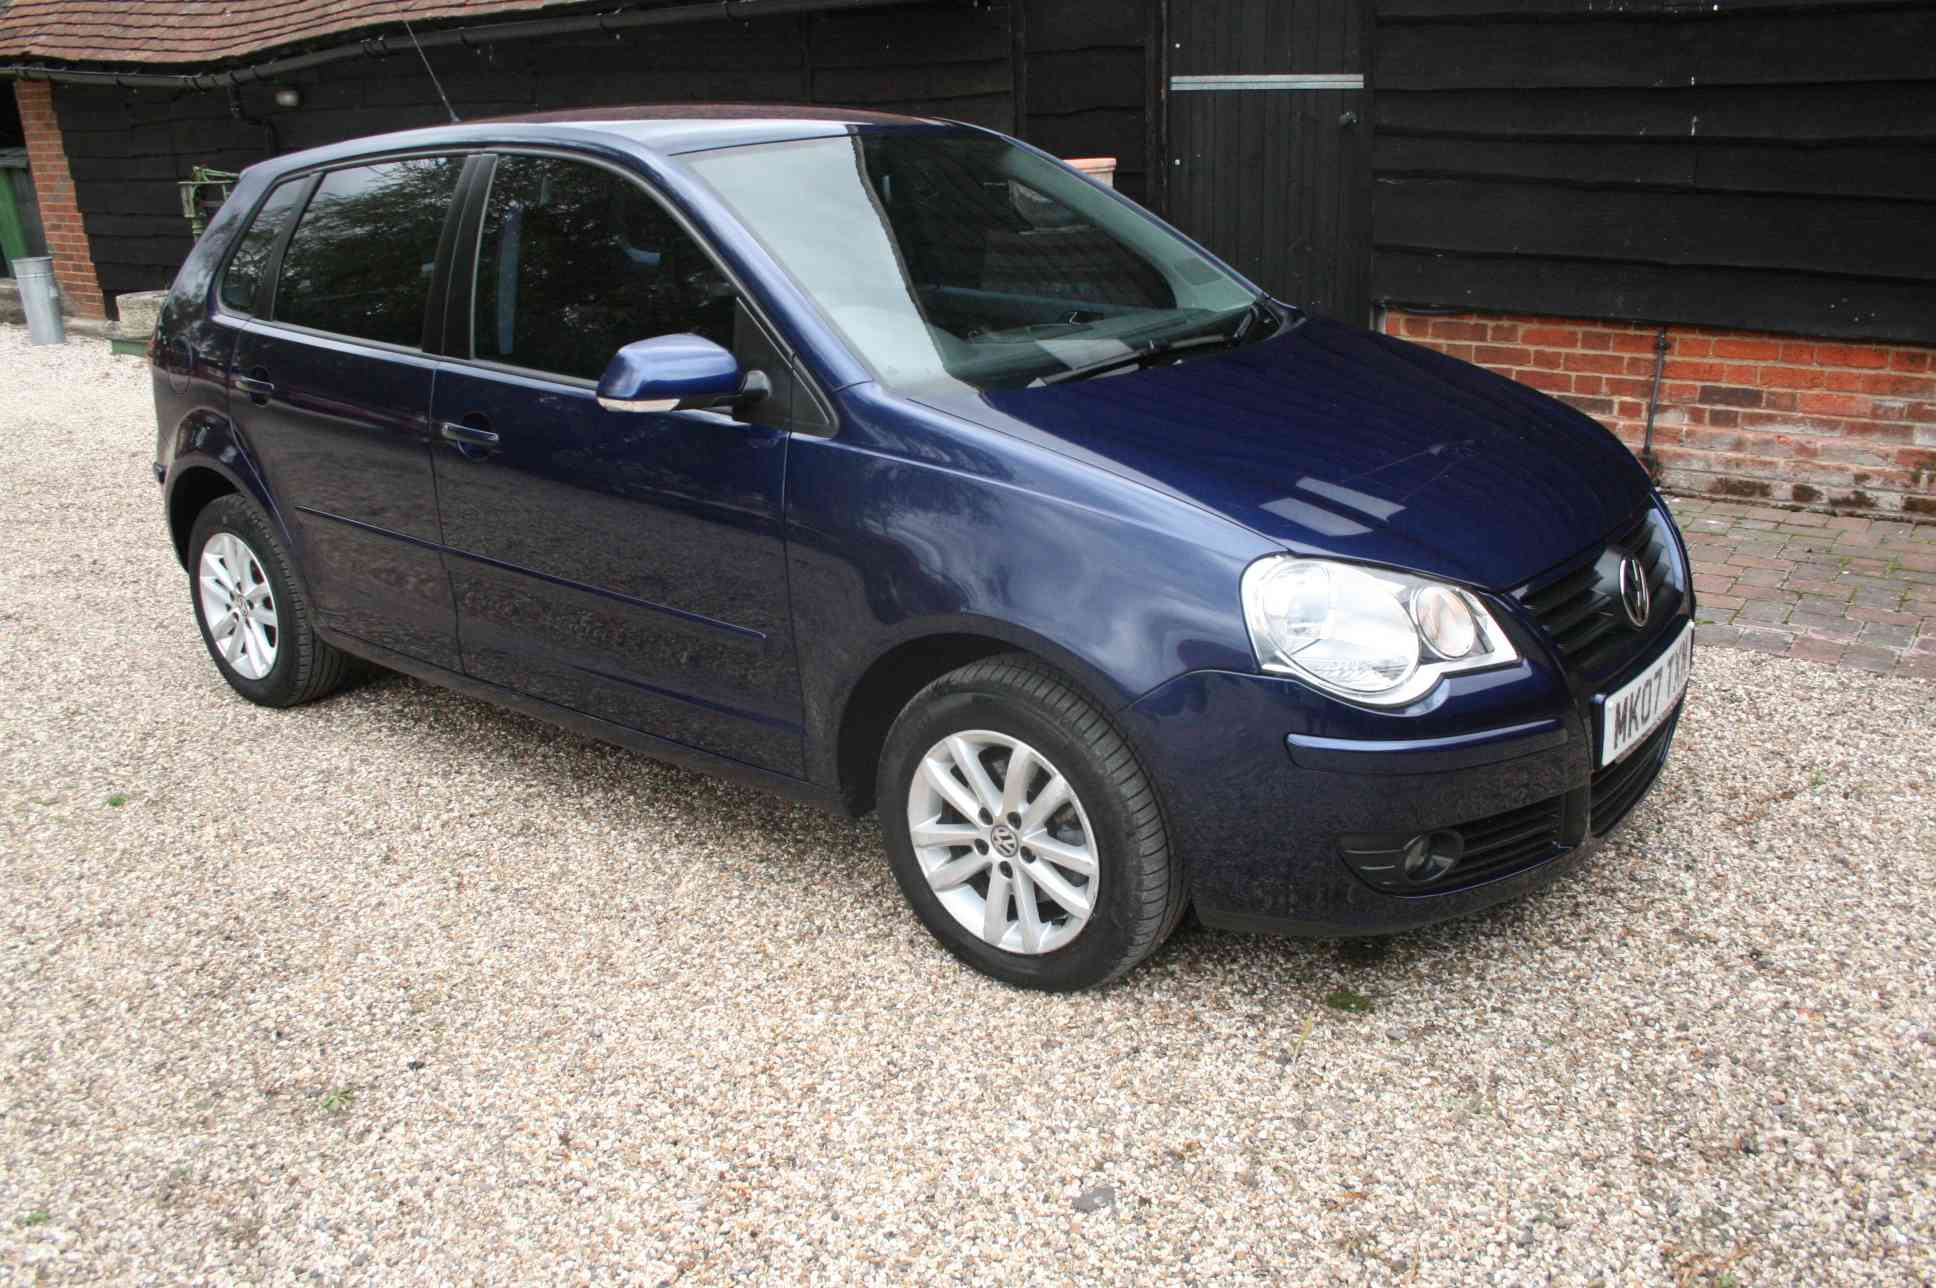 VOLKSWAGEN Polo S 5 Door Hatchback £3999